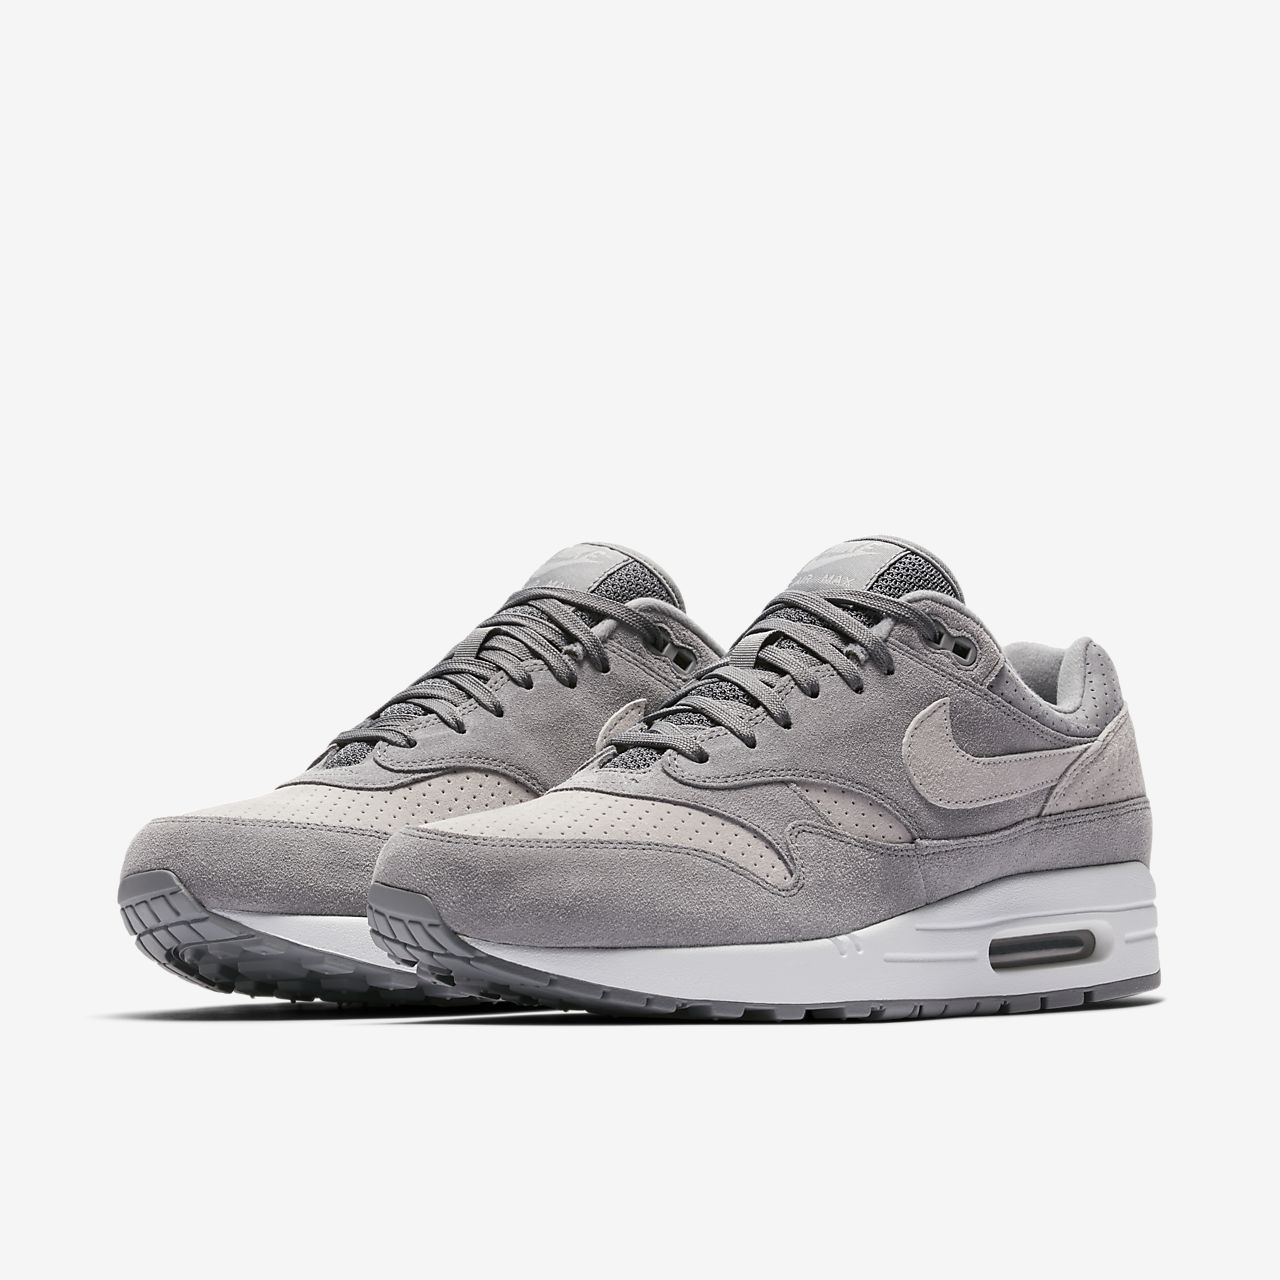 air max 1 premium sc sneaker elemental gold nz